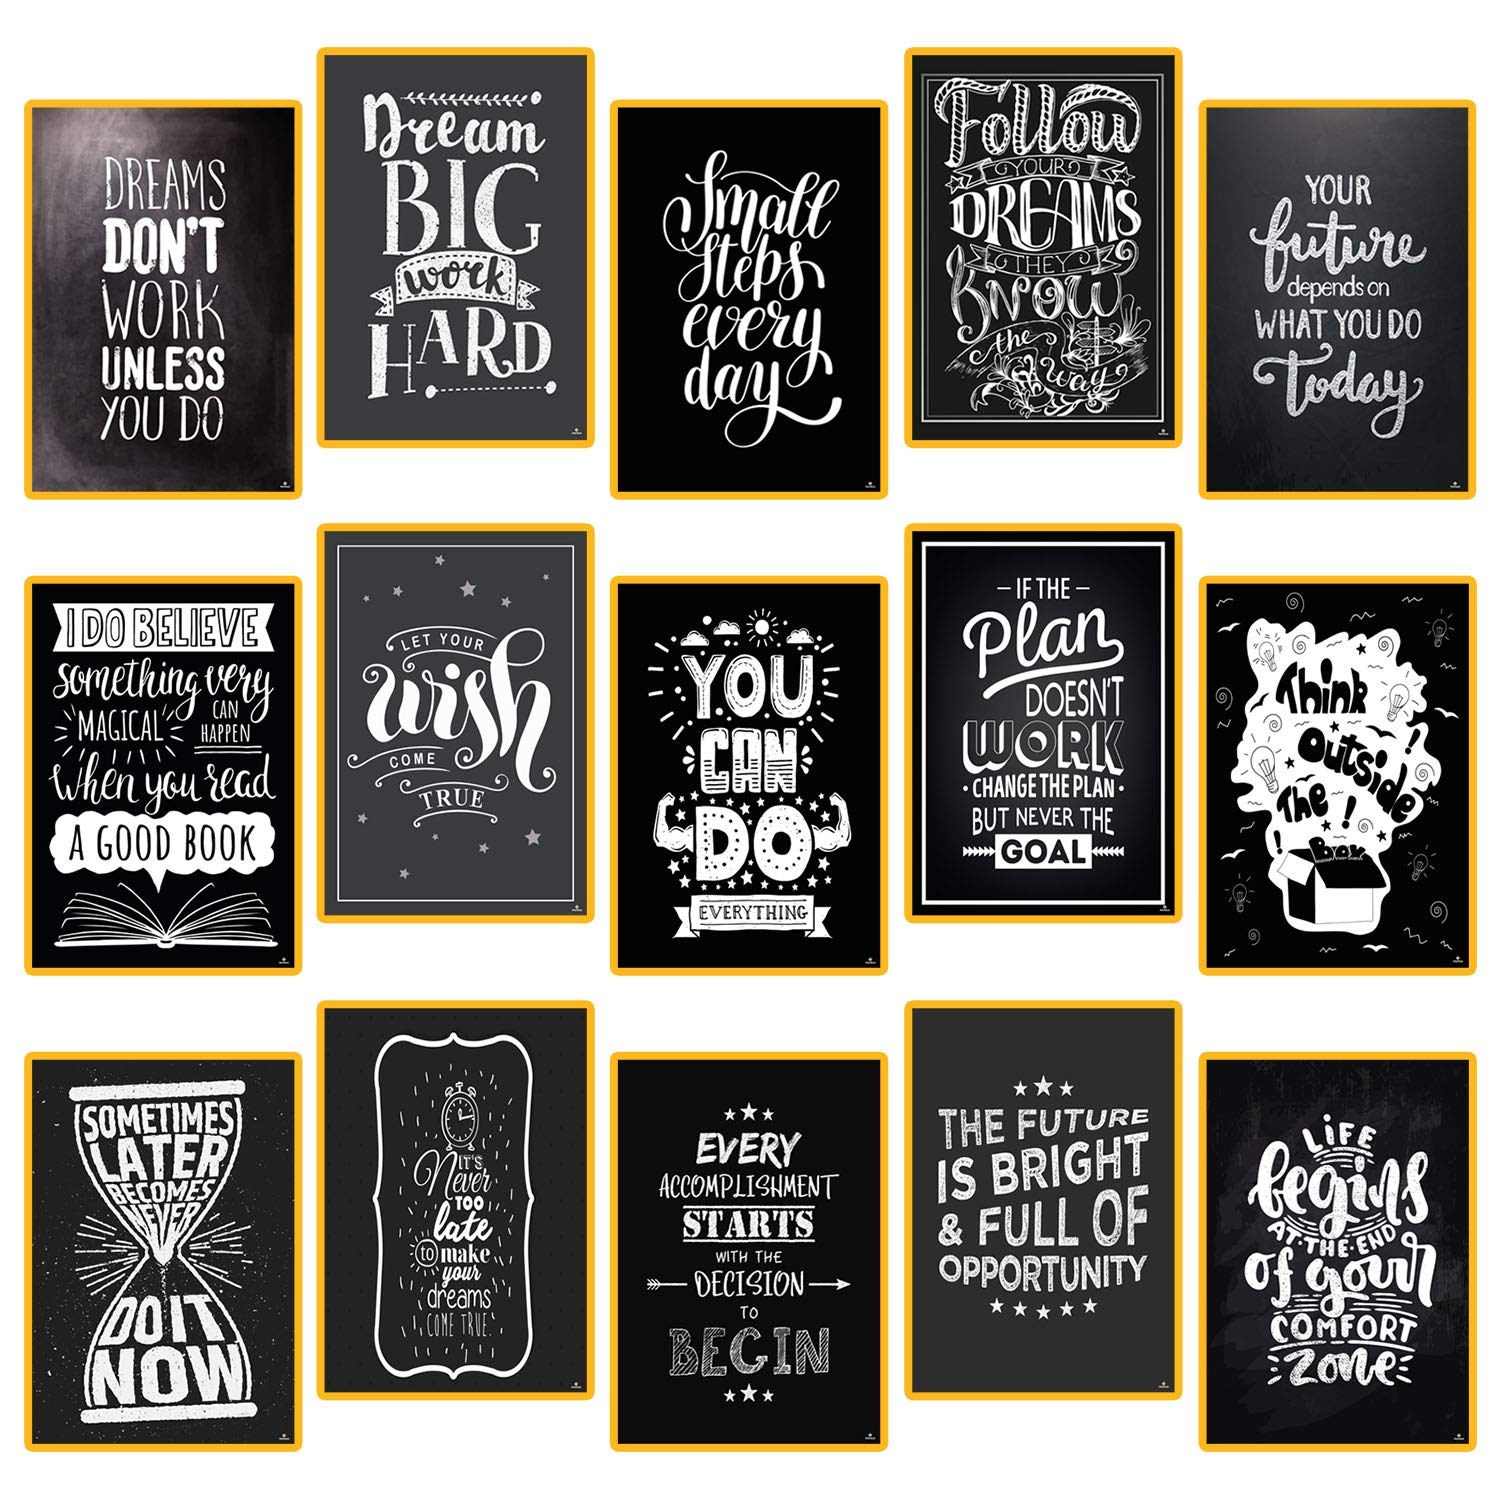 15 Set Motivational Posters for Classroom Decorations Chalkboard - Home, Room, Office Inspirational Quotes Wall Decor Black White Pictures 13'' x 19'' - Inspiring Students, Women, Men, Teachers Gifts